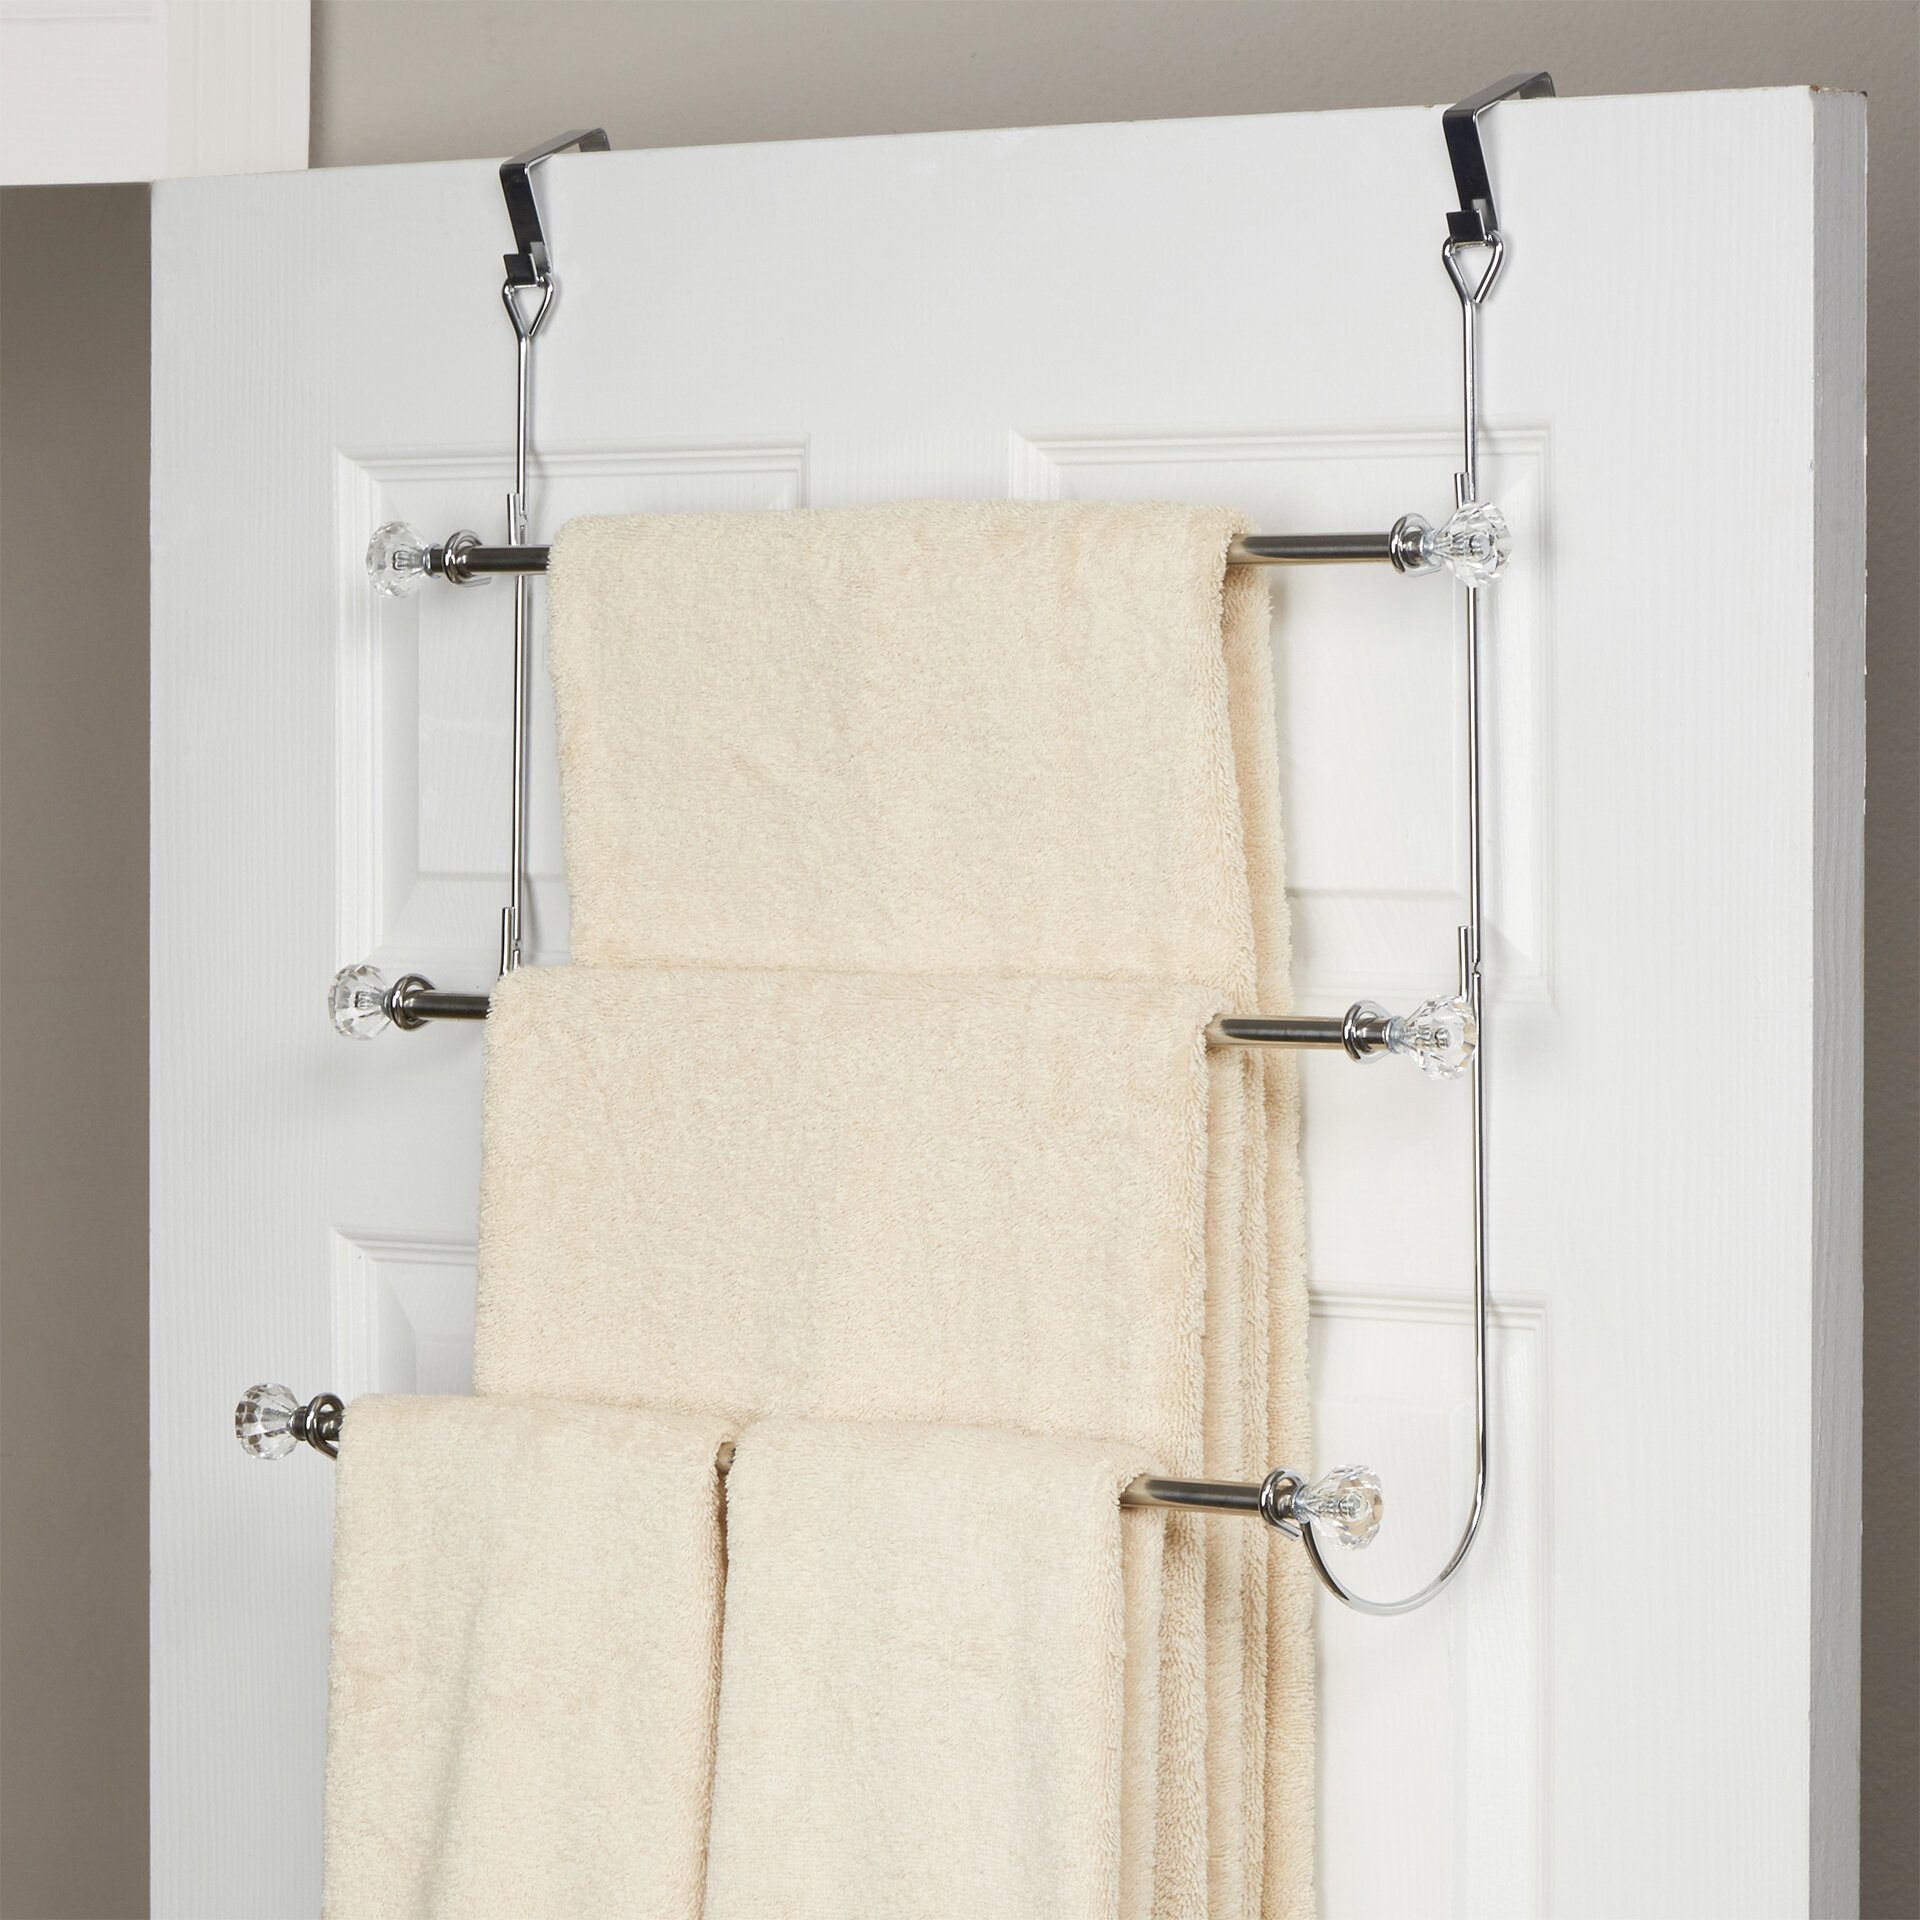 Wayfair Basics 3 Tier Over The Door Towel Rack Reviews